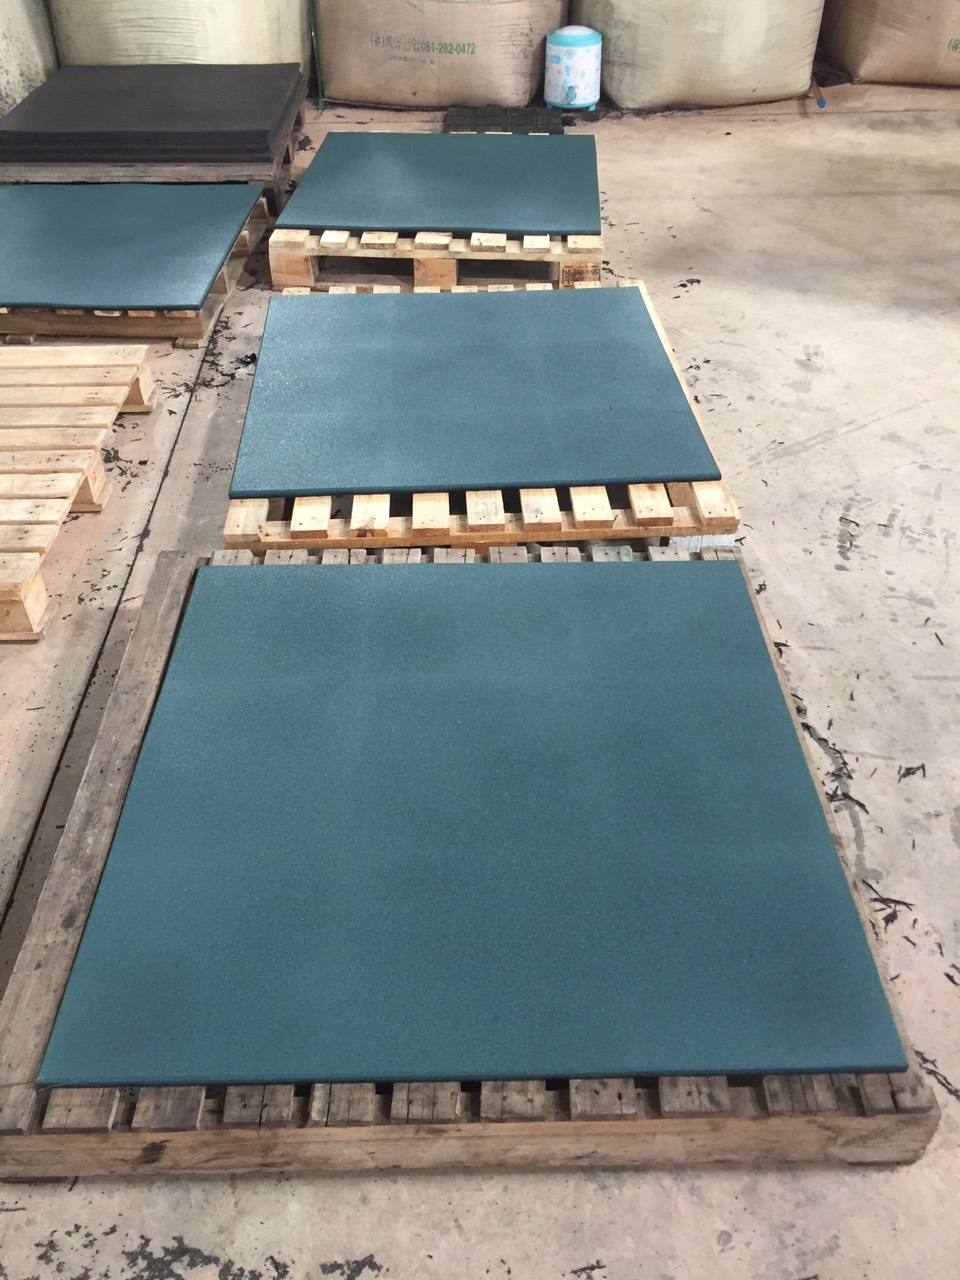 The 1000x1000x15mm rubber gym mat